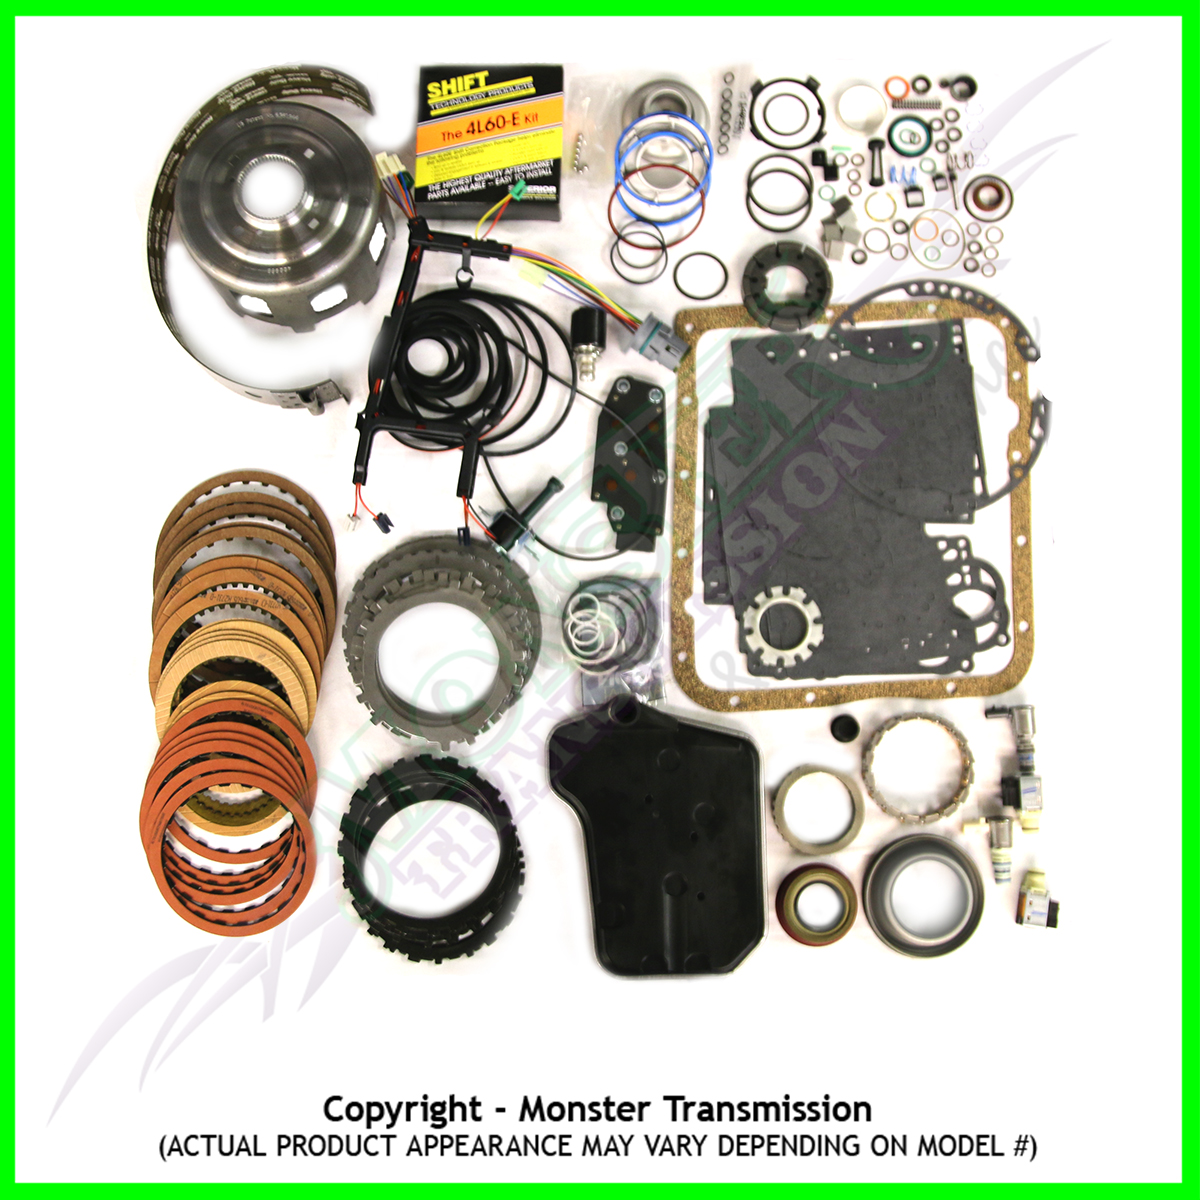 Monster transmission rebuild kit-5618